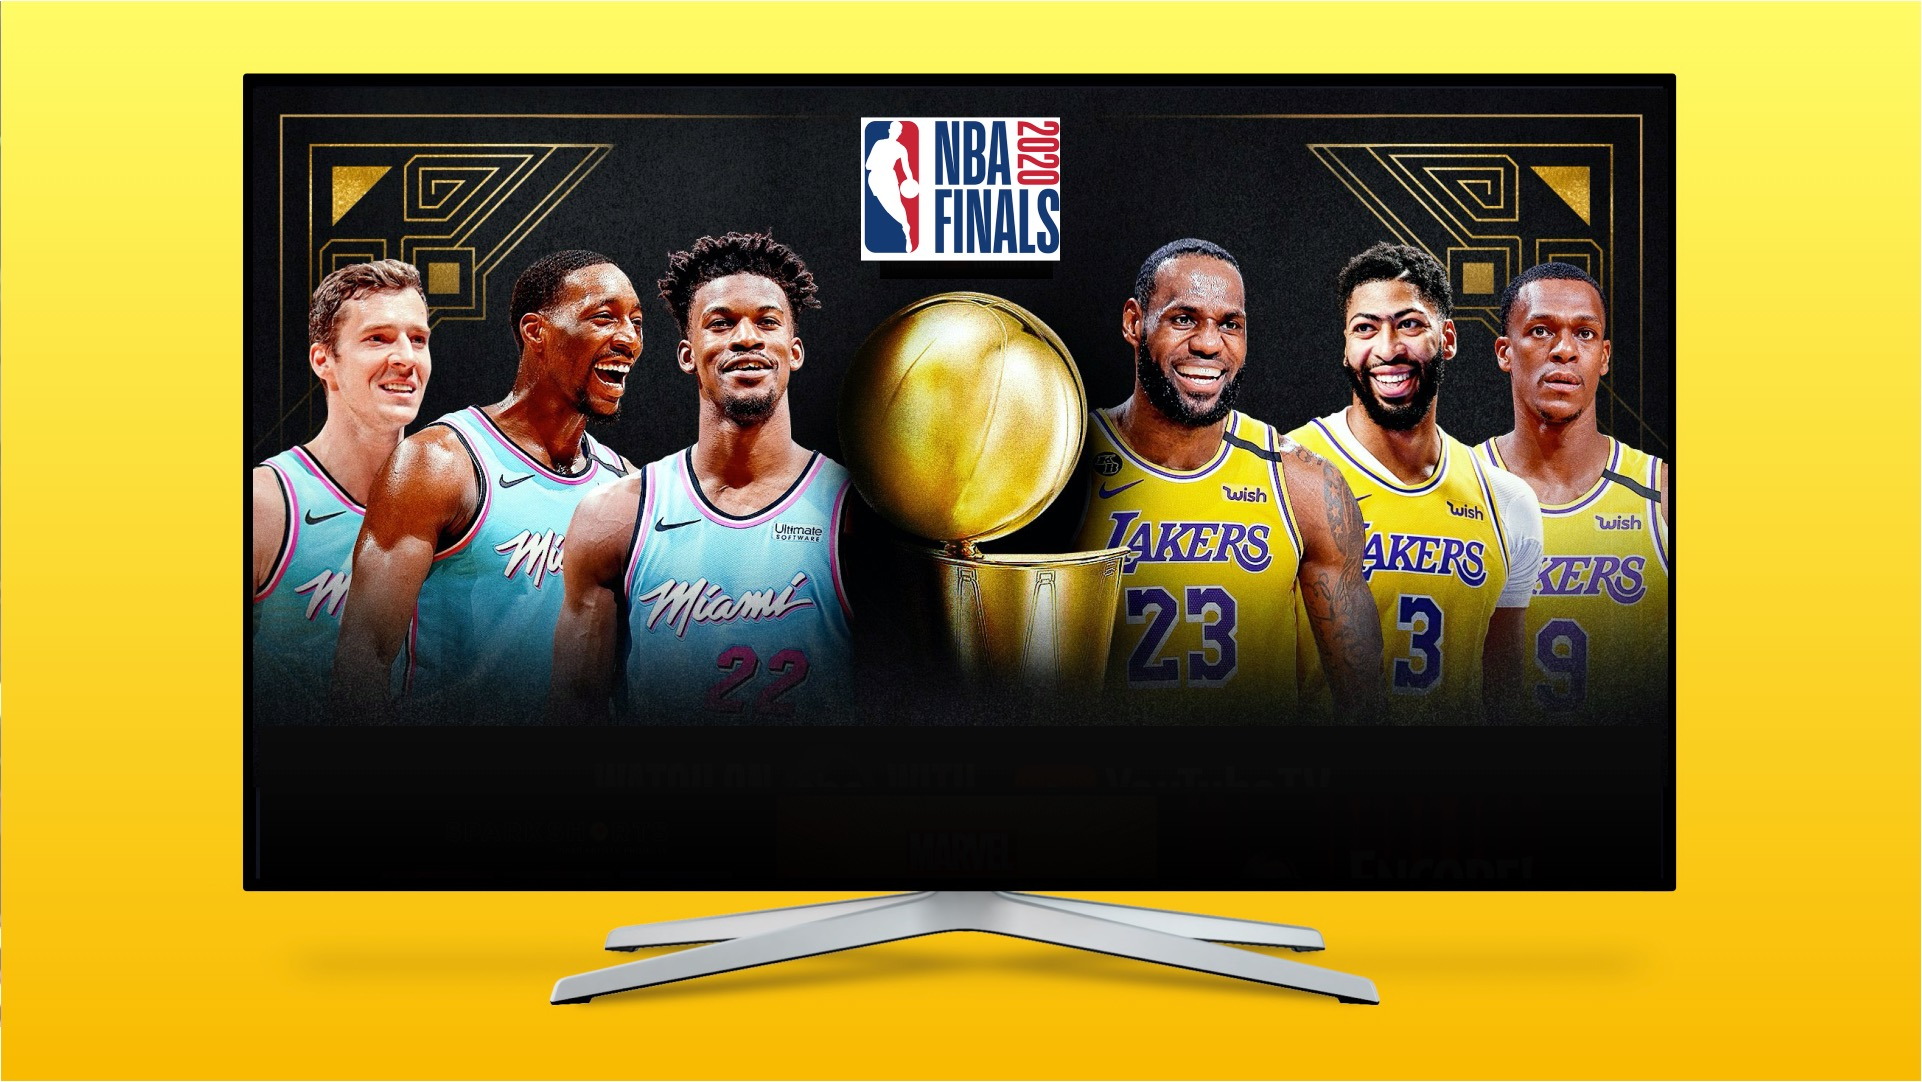 How To Watch The 2020 Nba Finals Heat Vs Lakers Live Online Without Cable The Streamable